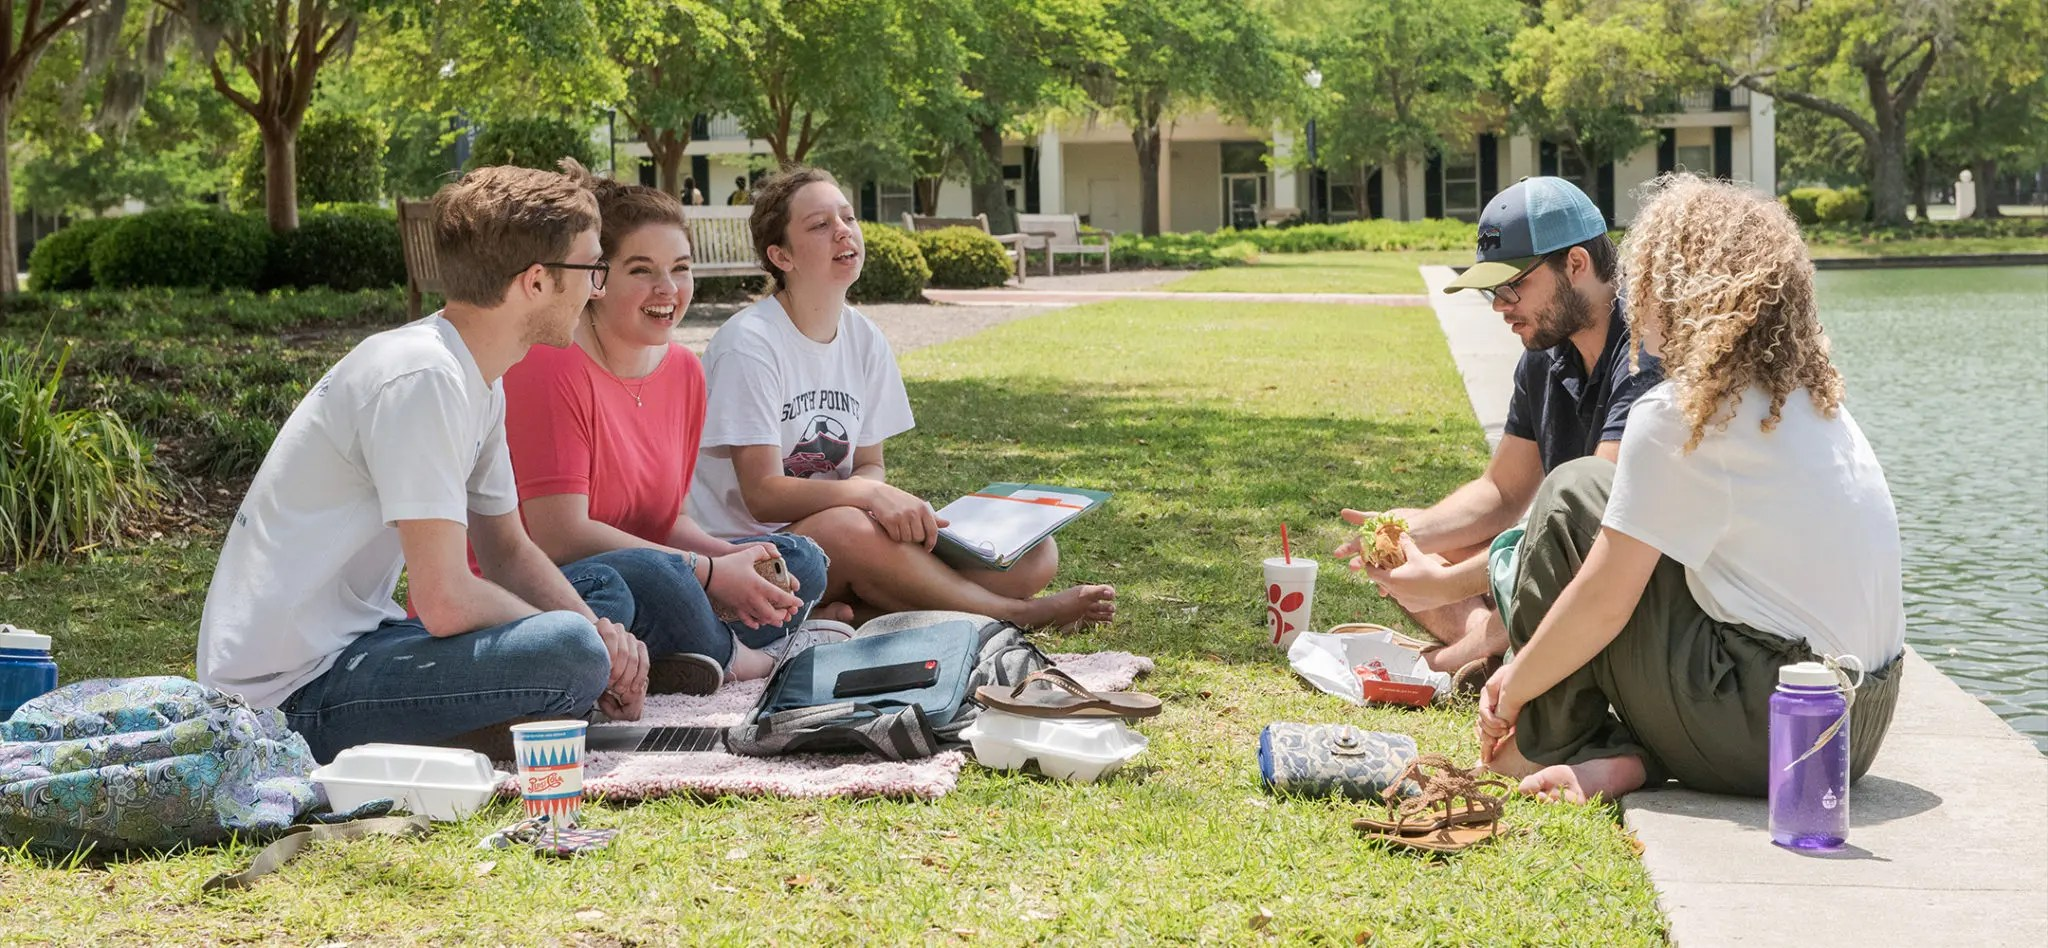 Students having lunch on the edge of the reflection pond.